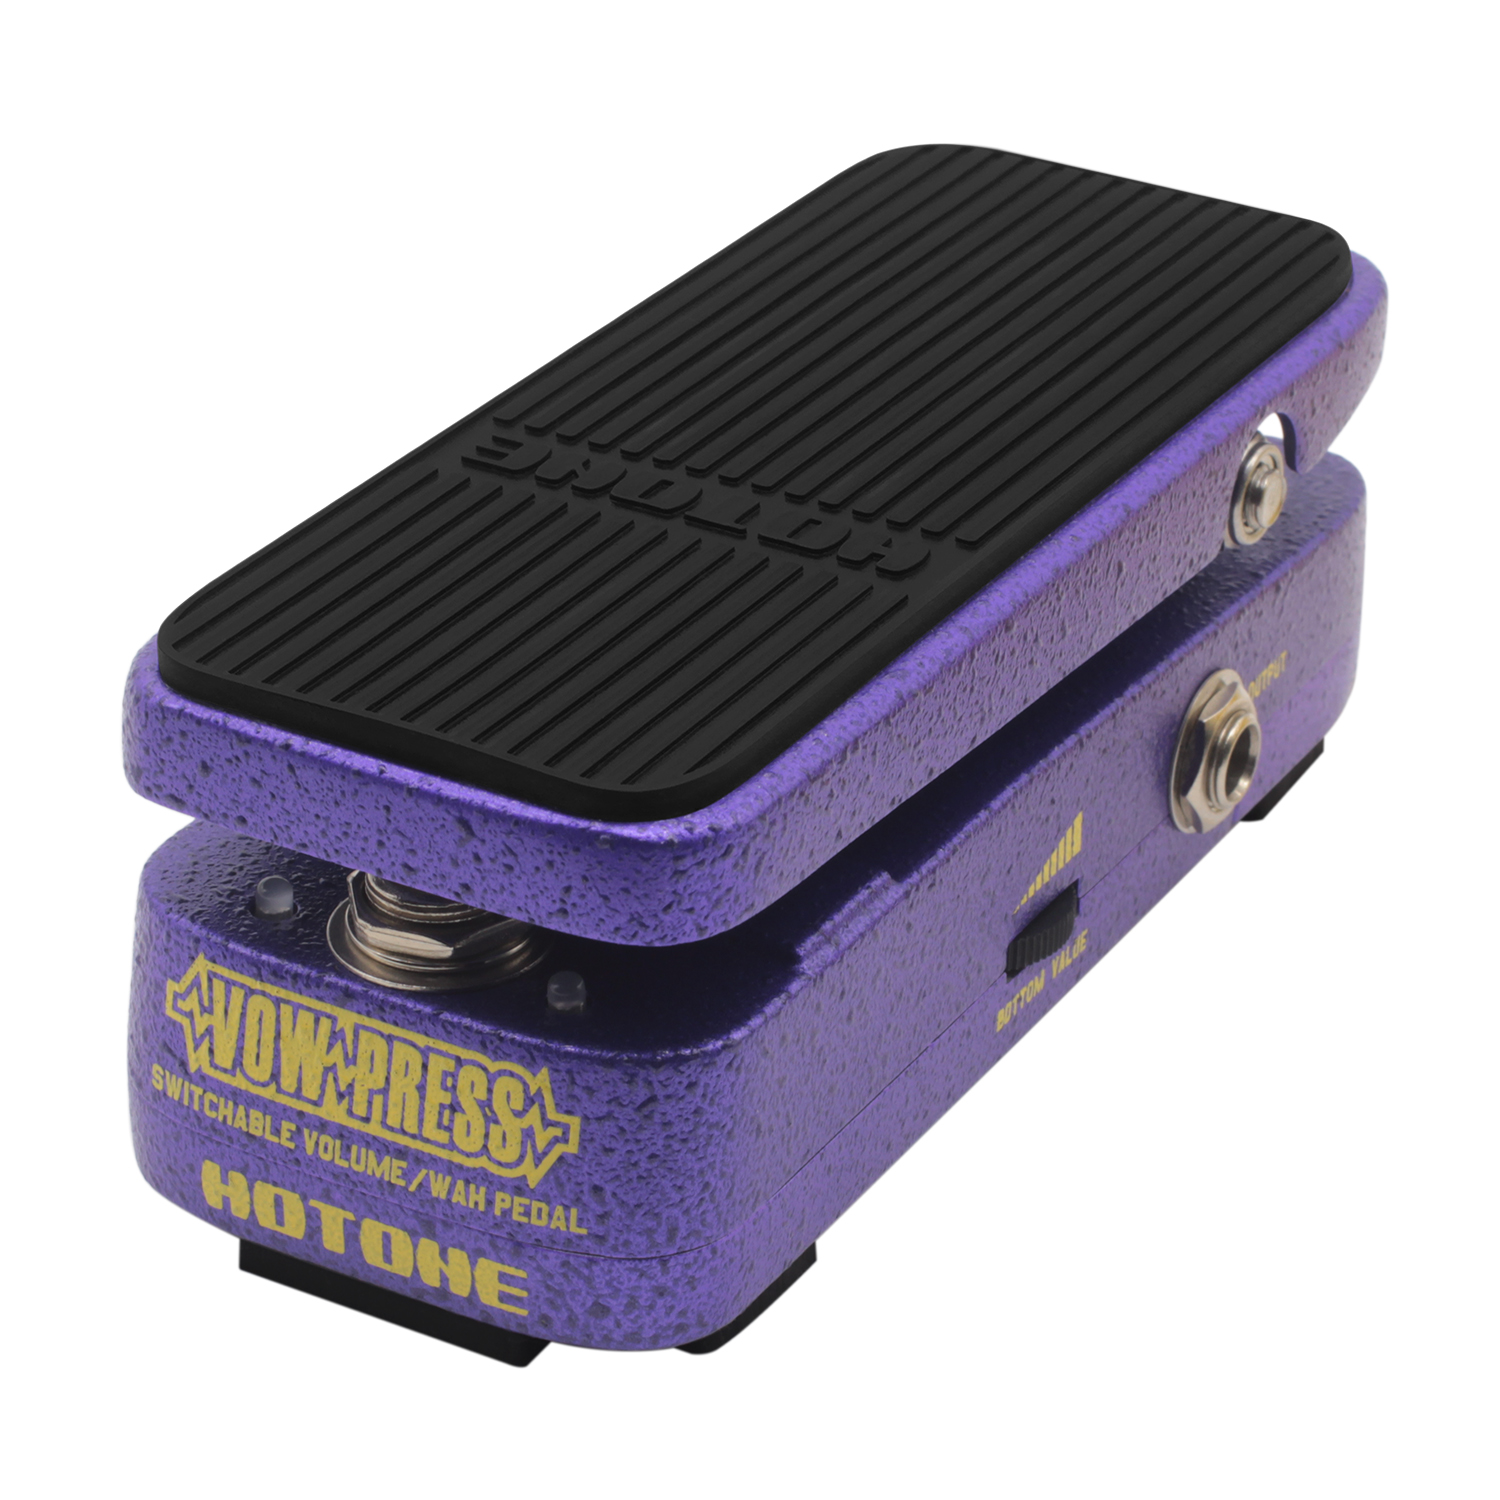 Hotone Vow Press Volume Wah Effect Pedal Based on CryBaby Wah Pedal 3-in-1 Electric Guitar Effects Adjustable Ccontrol Range new kokko 2 inch 1 wah vol guitar pedal kw 1 mini wah volume combination multi effects pedal guitar accessories